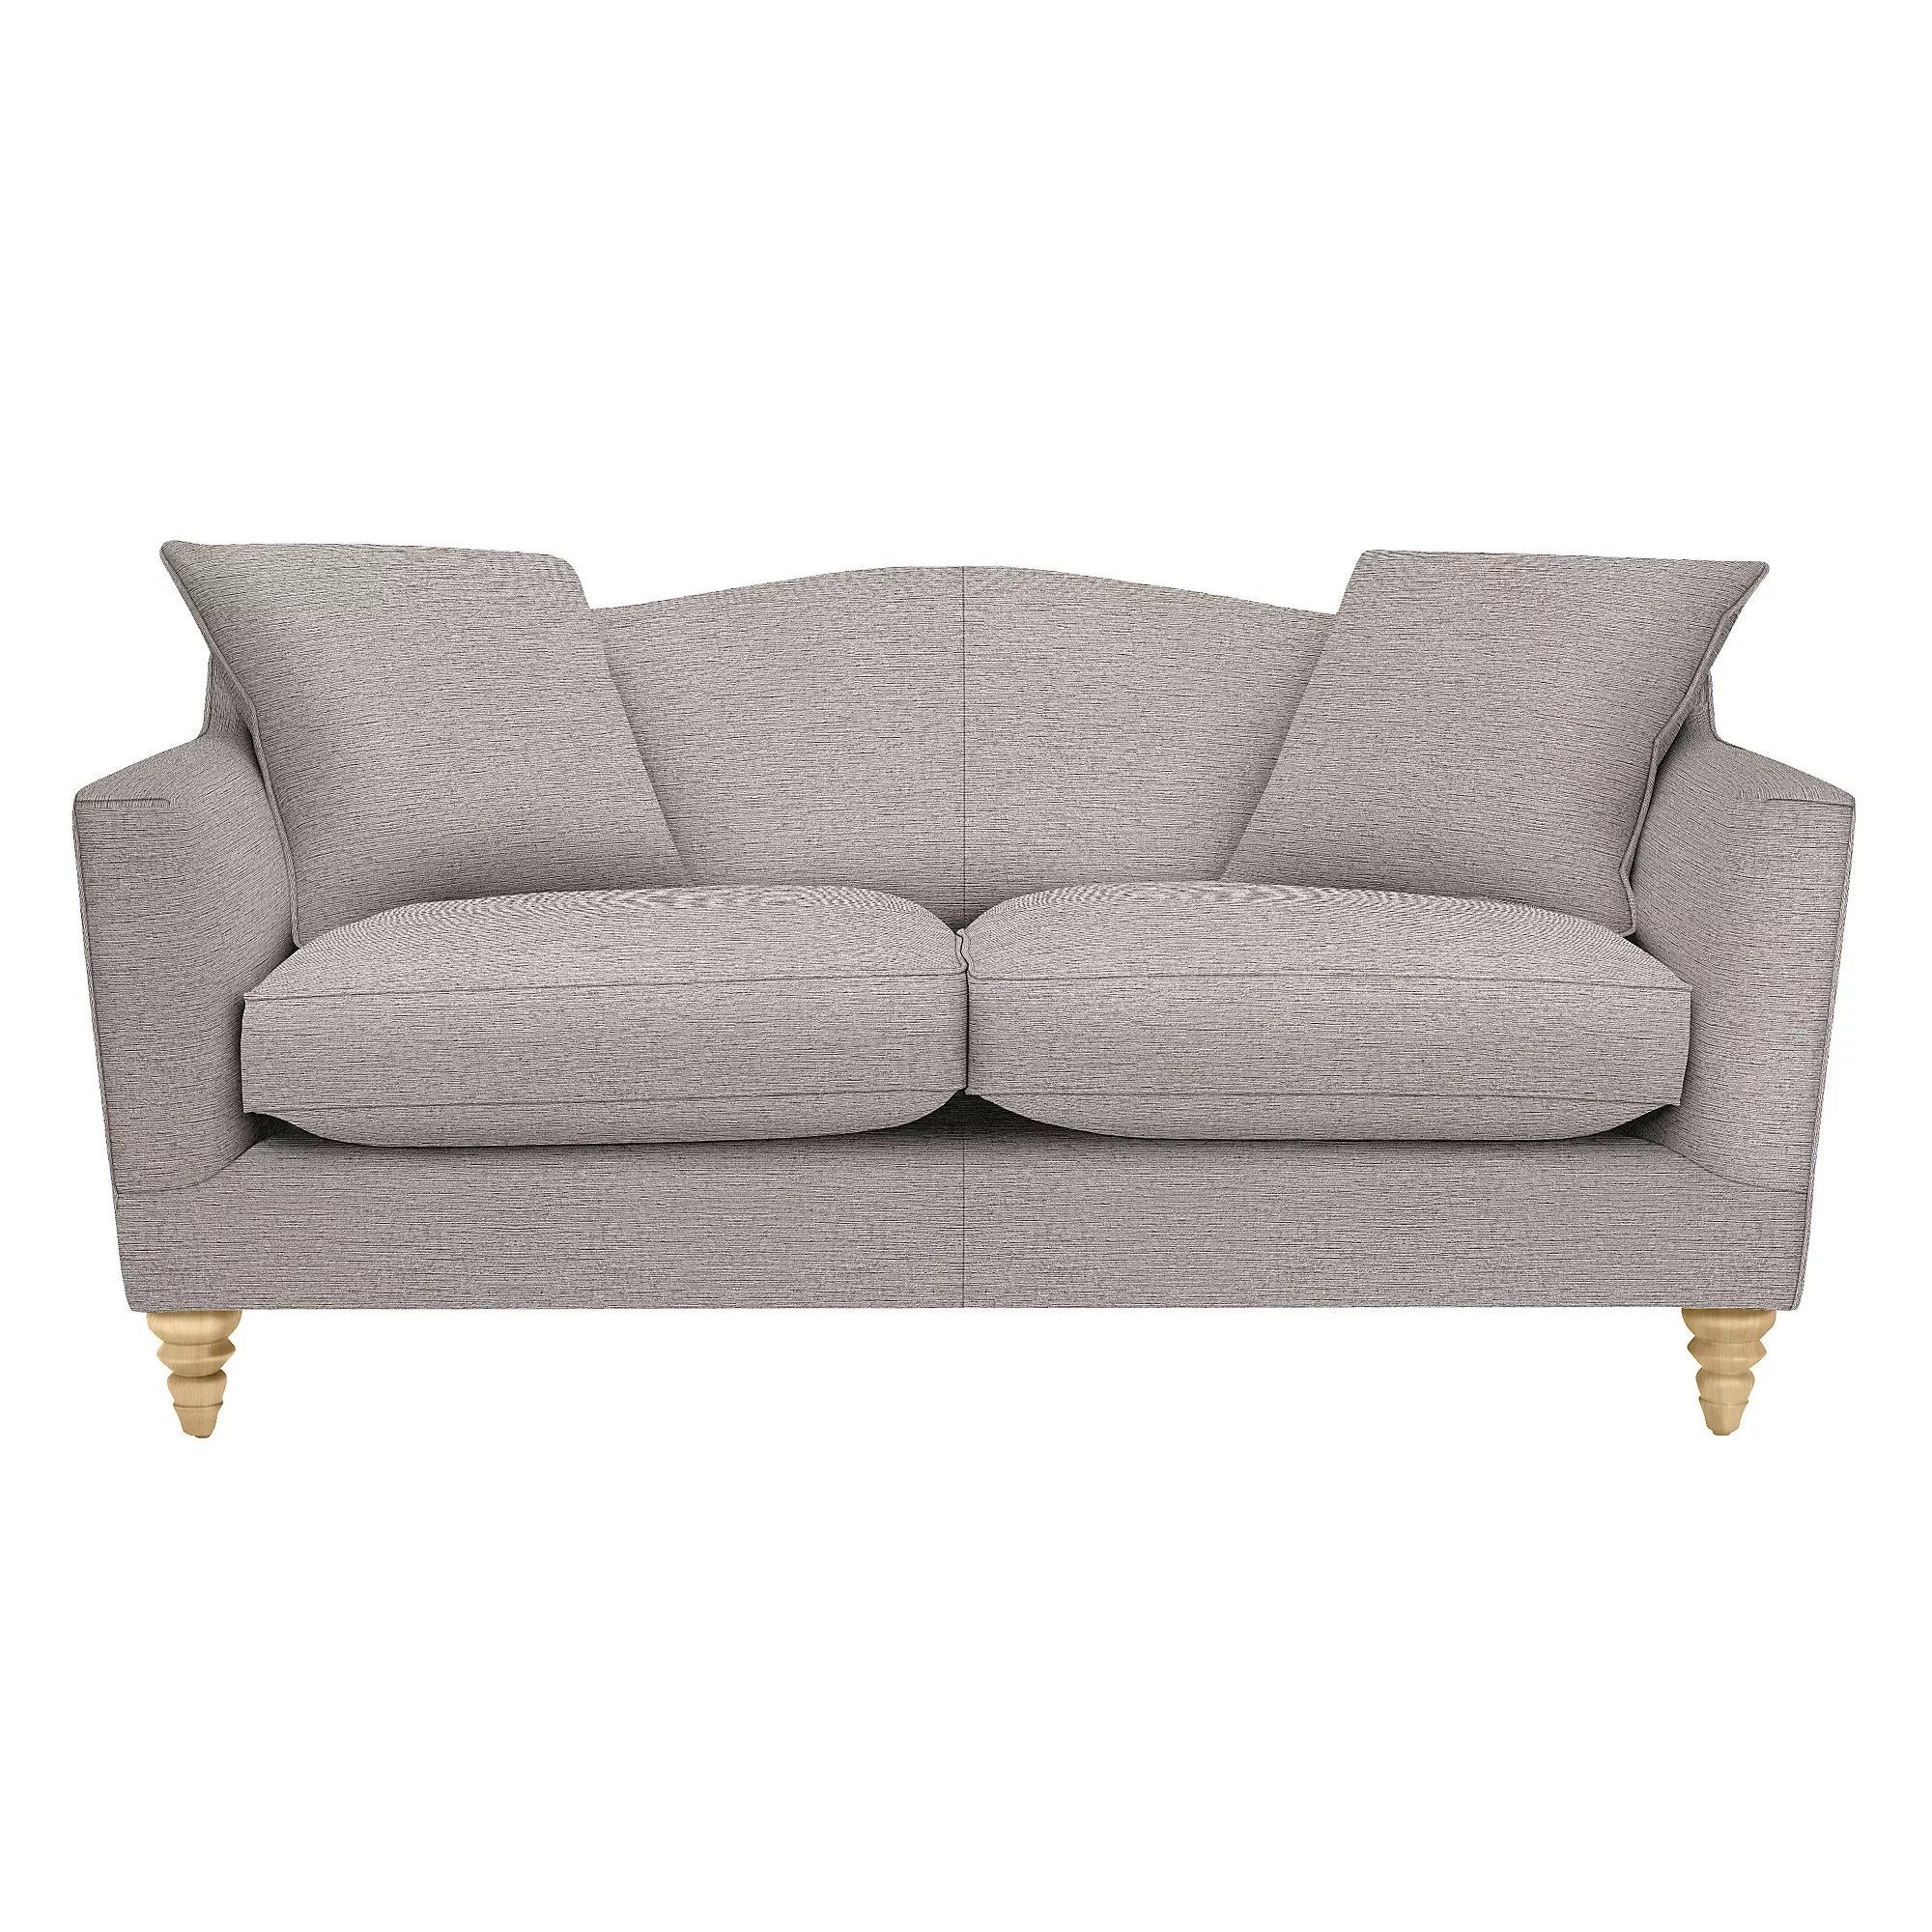 John Lewis Melrose Sofa John Lewis Melrose Medium 2 Seater Sofa Light Leg At John Lewis